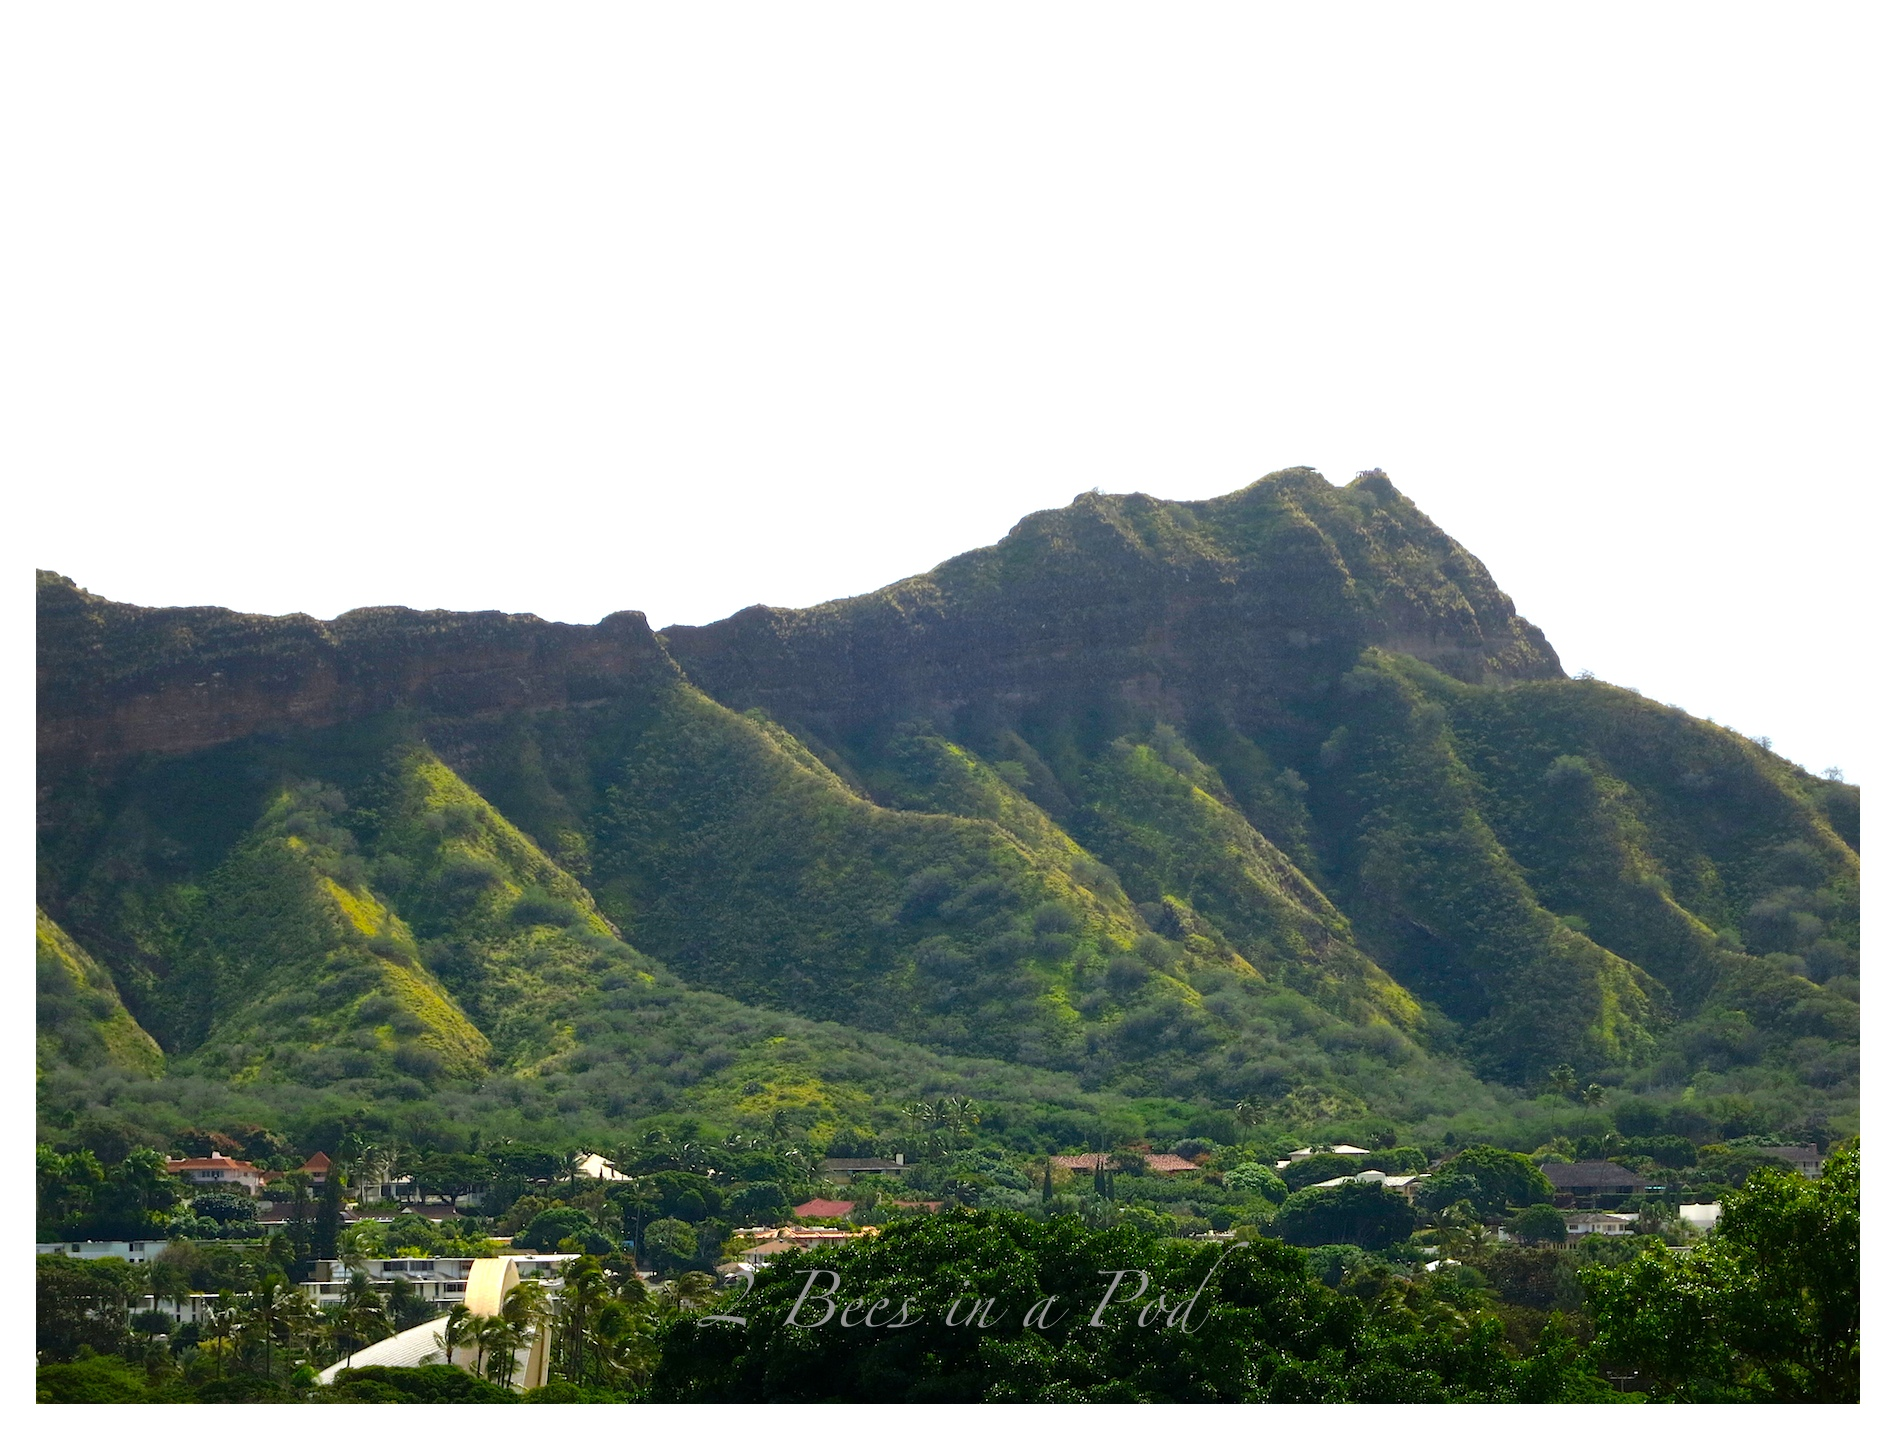 And right out our front door...Diamondhead